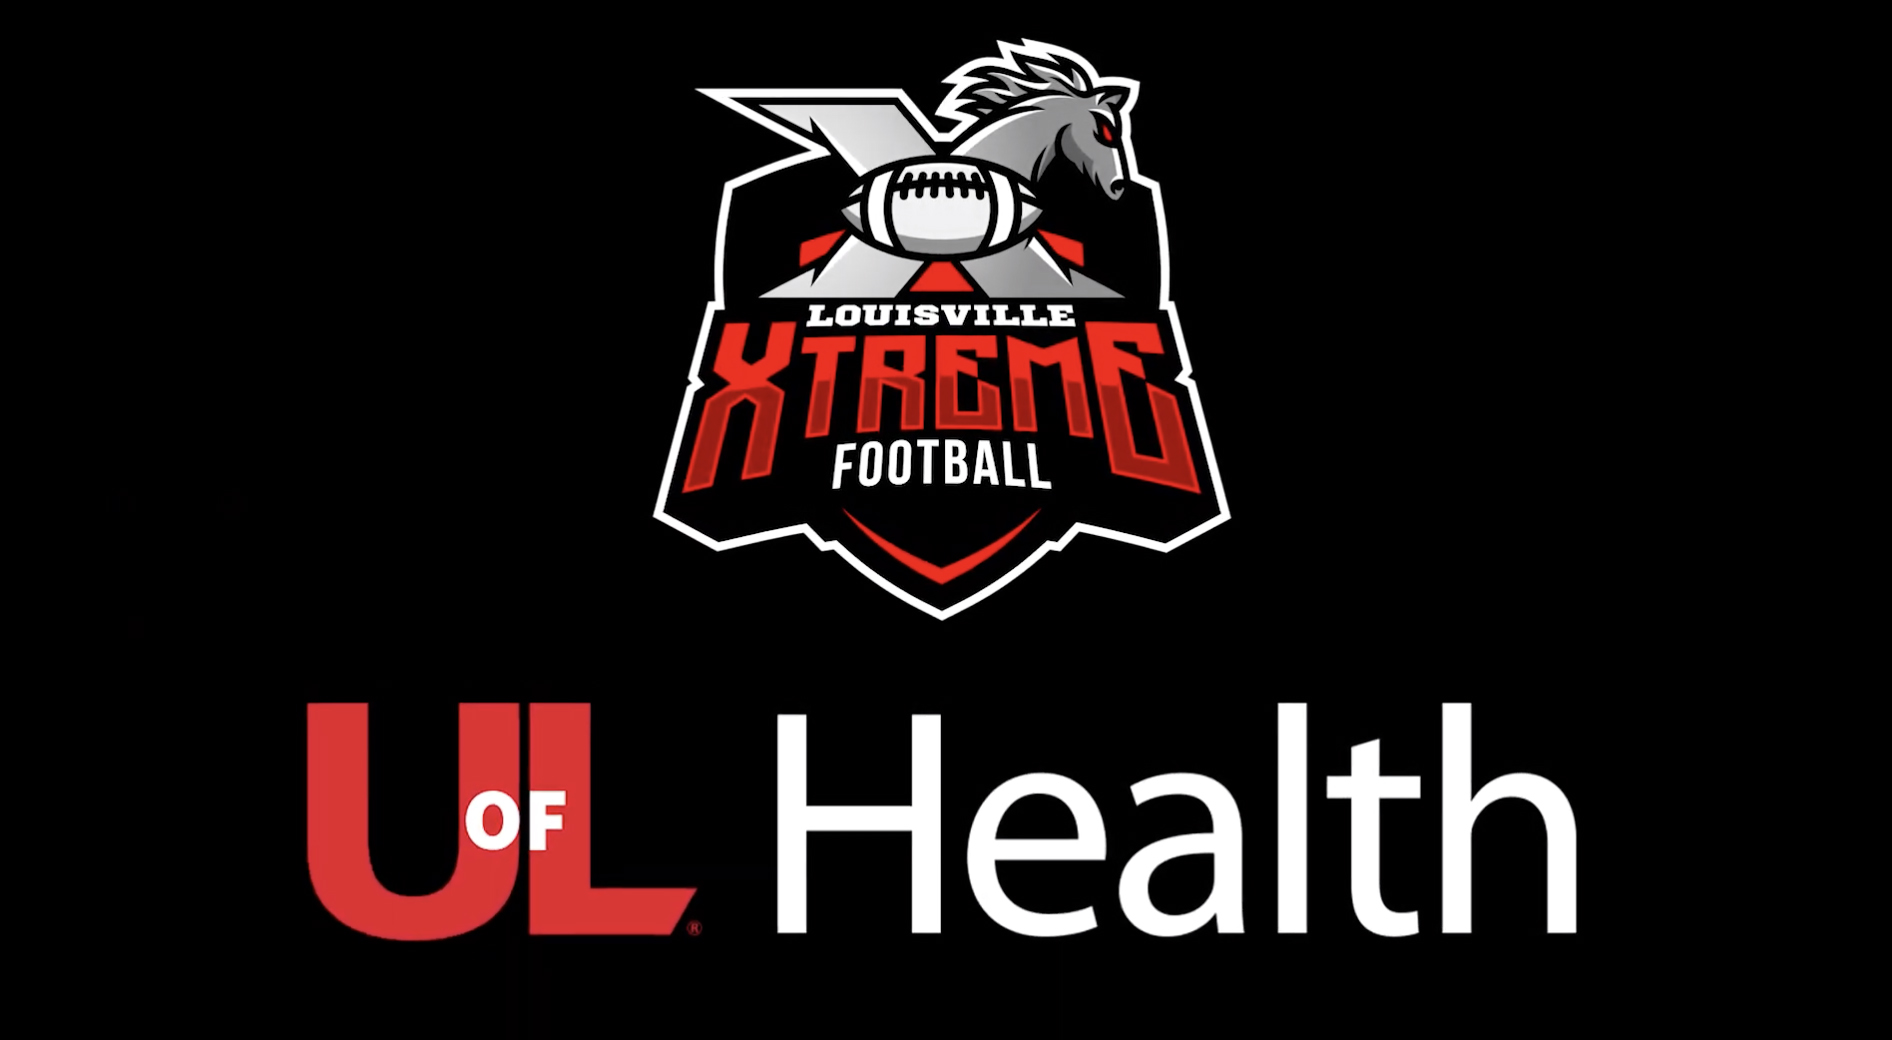 Louisville Xtreme welcomes UofL Health as title partner